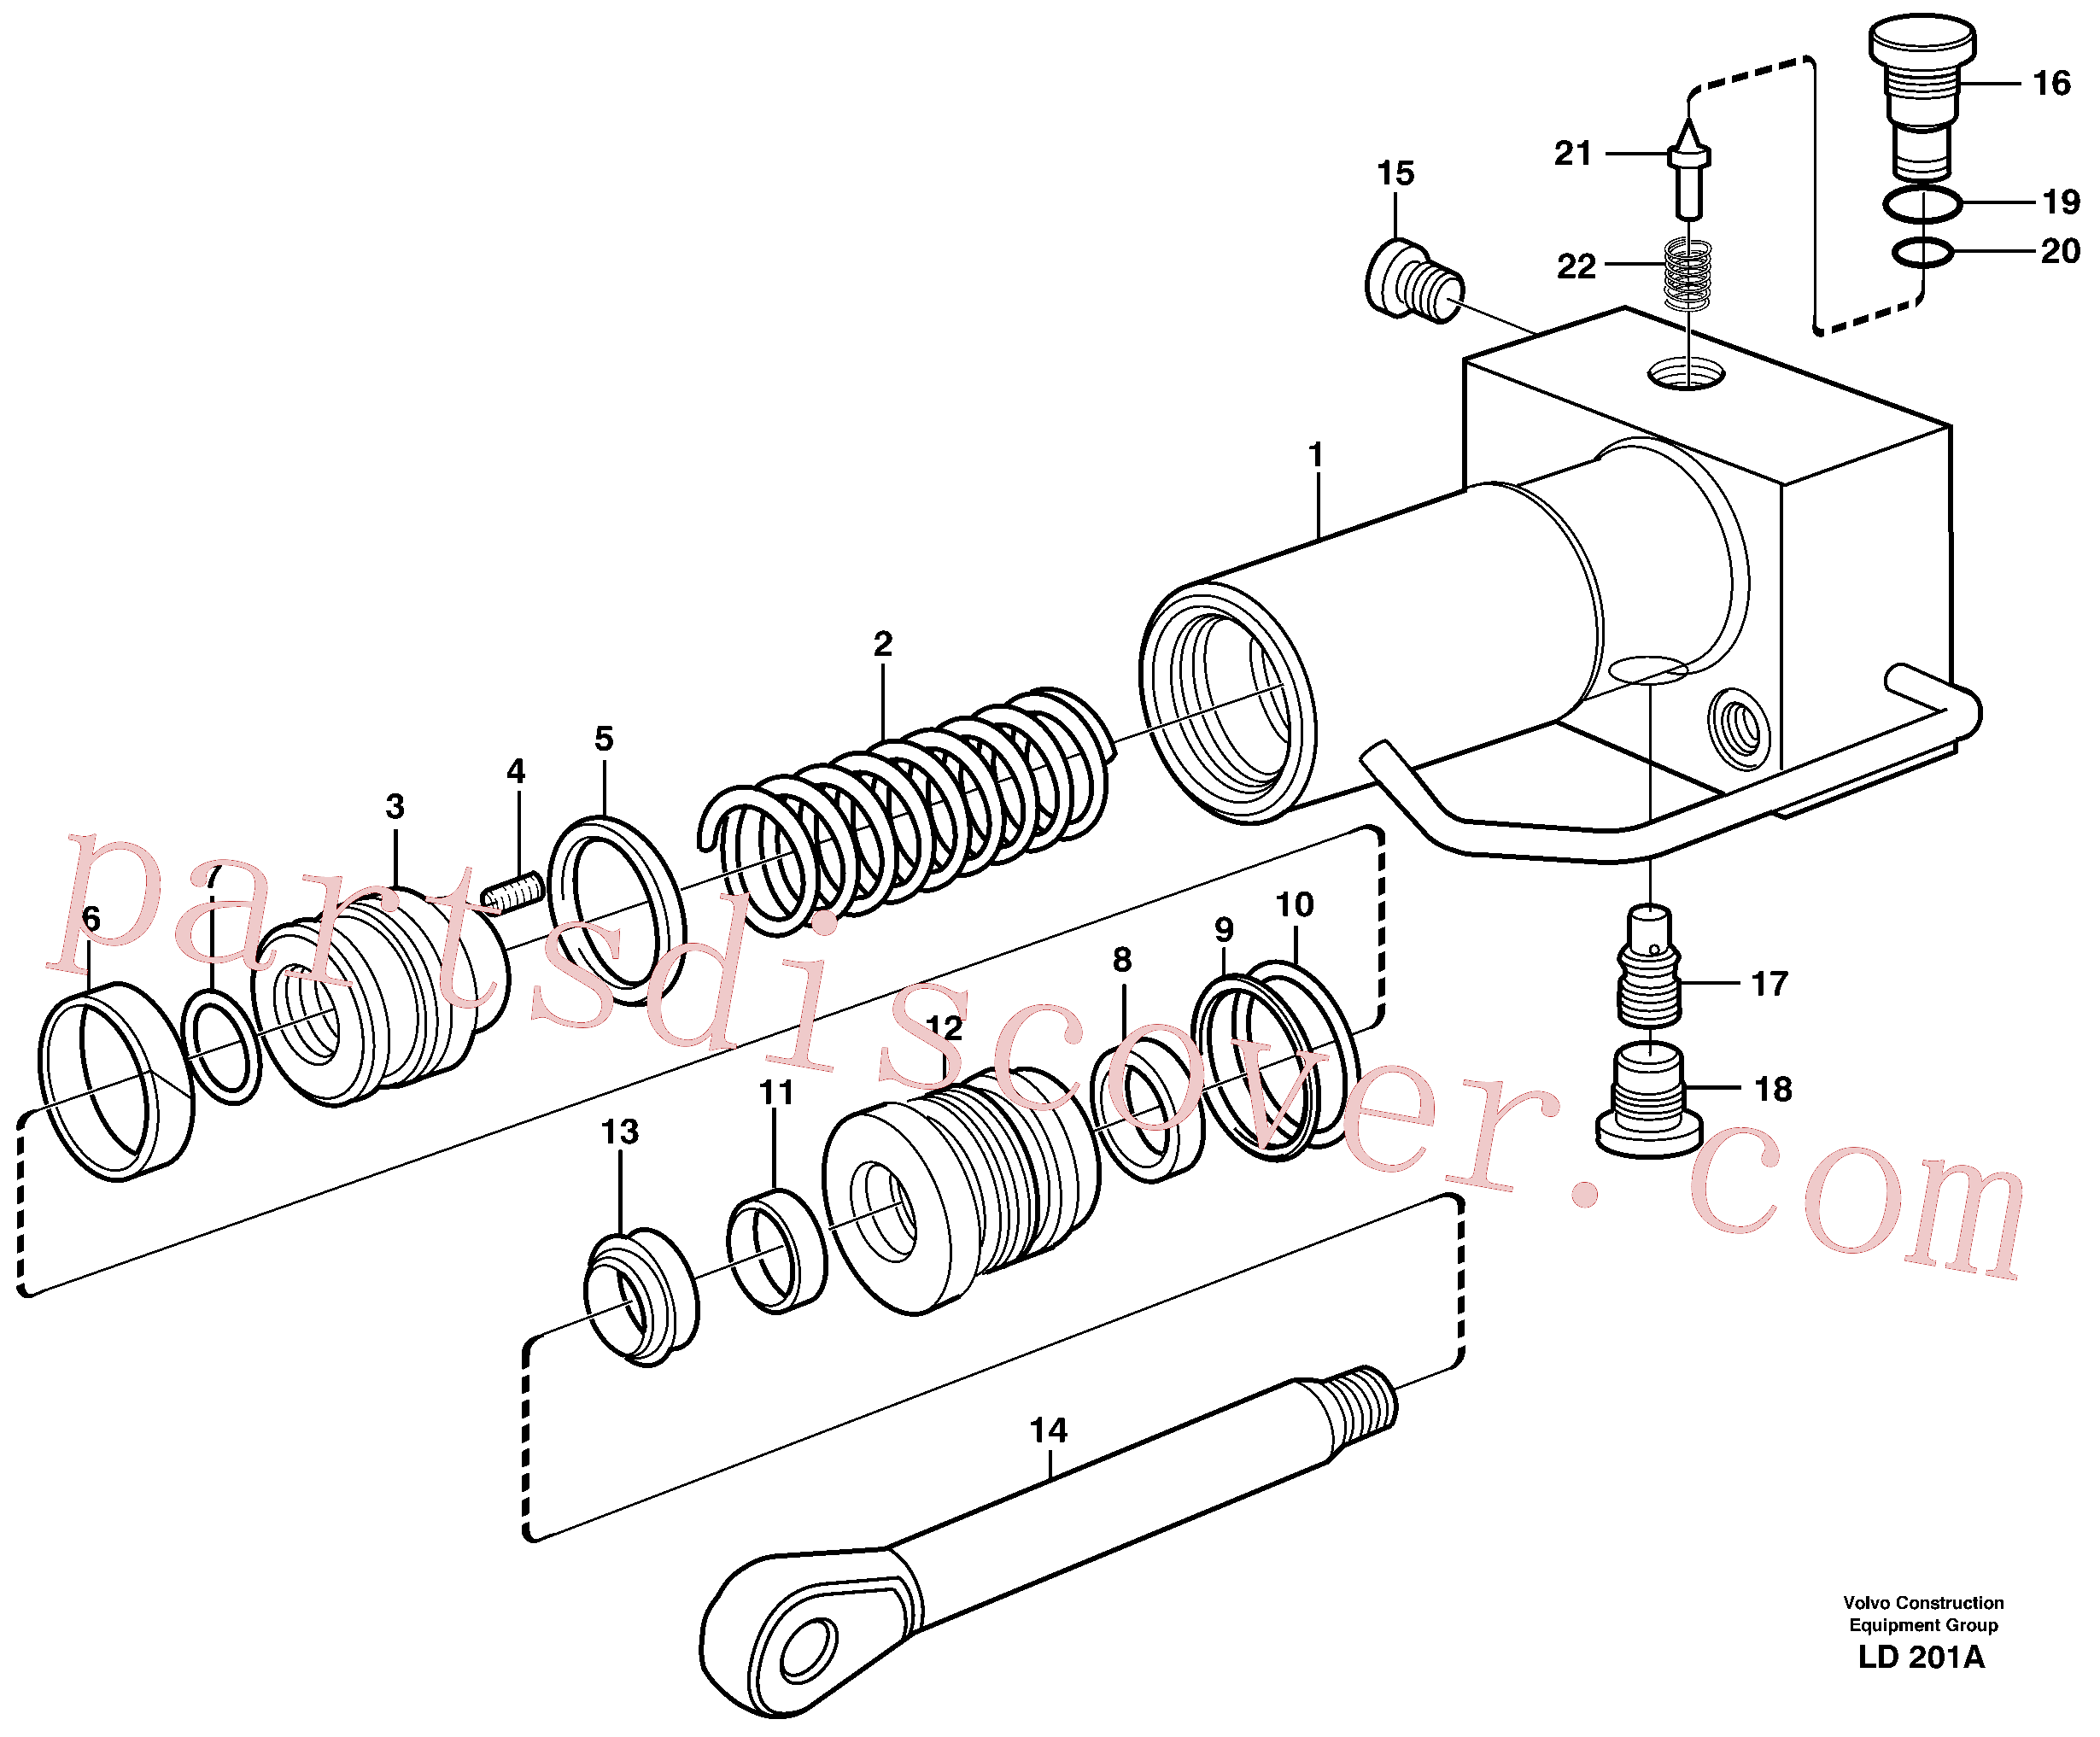 VOE11707594 for Volvo Hydraulic cylinder, quick attachment(LD201A assembly)